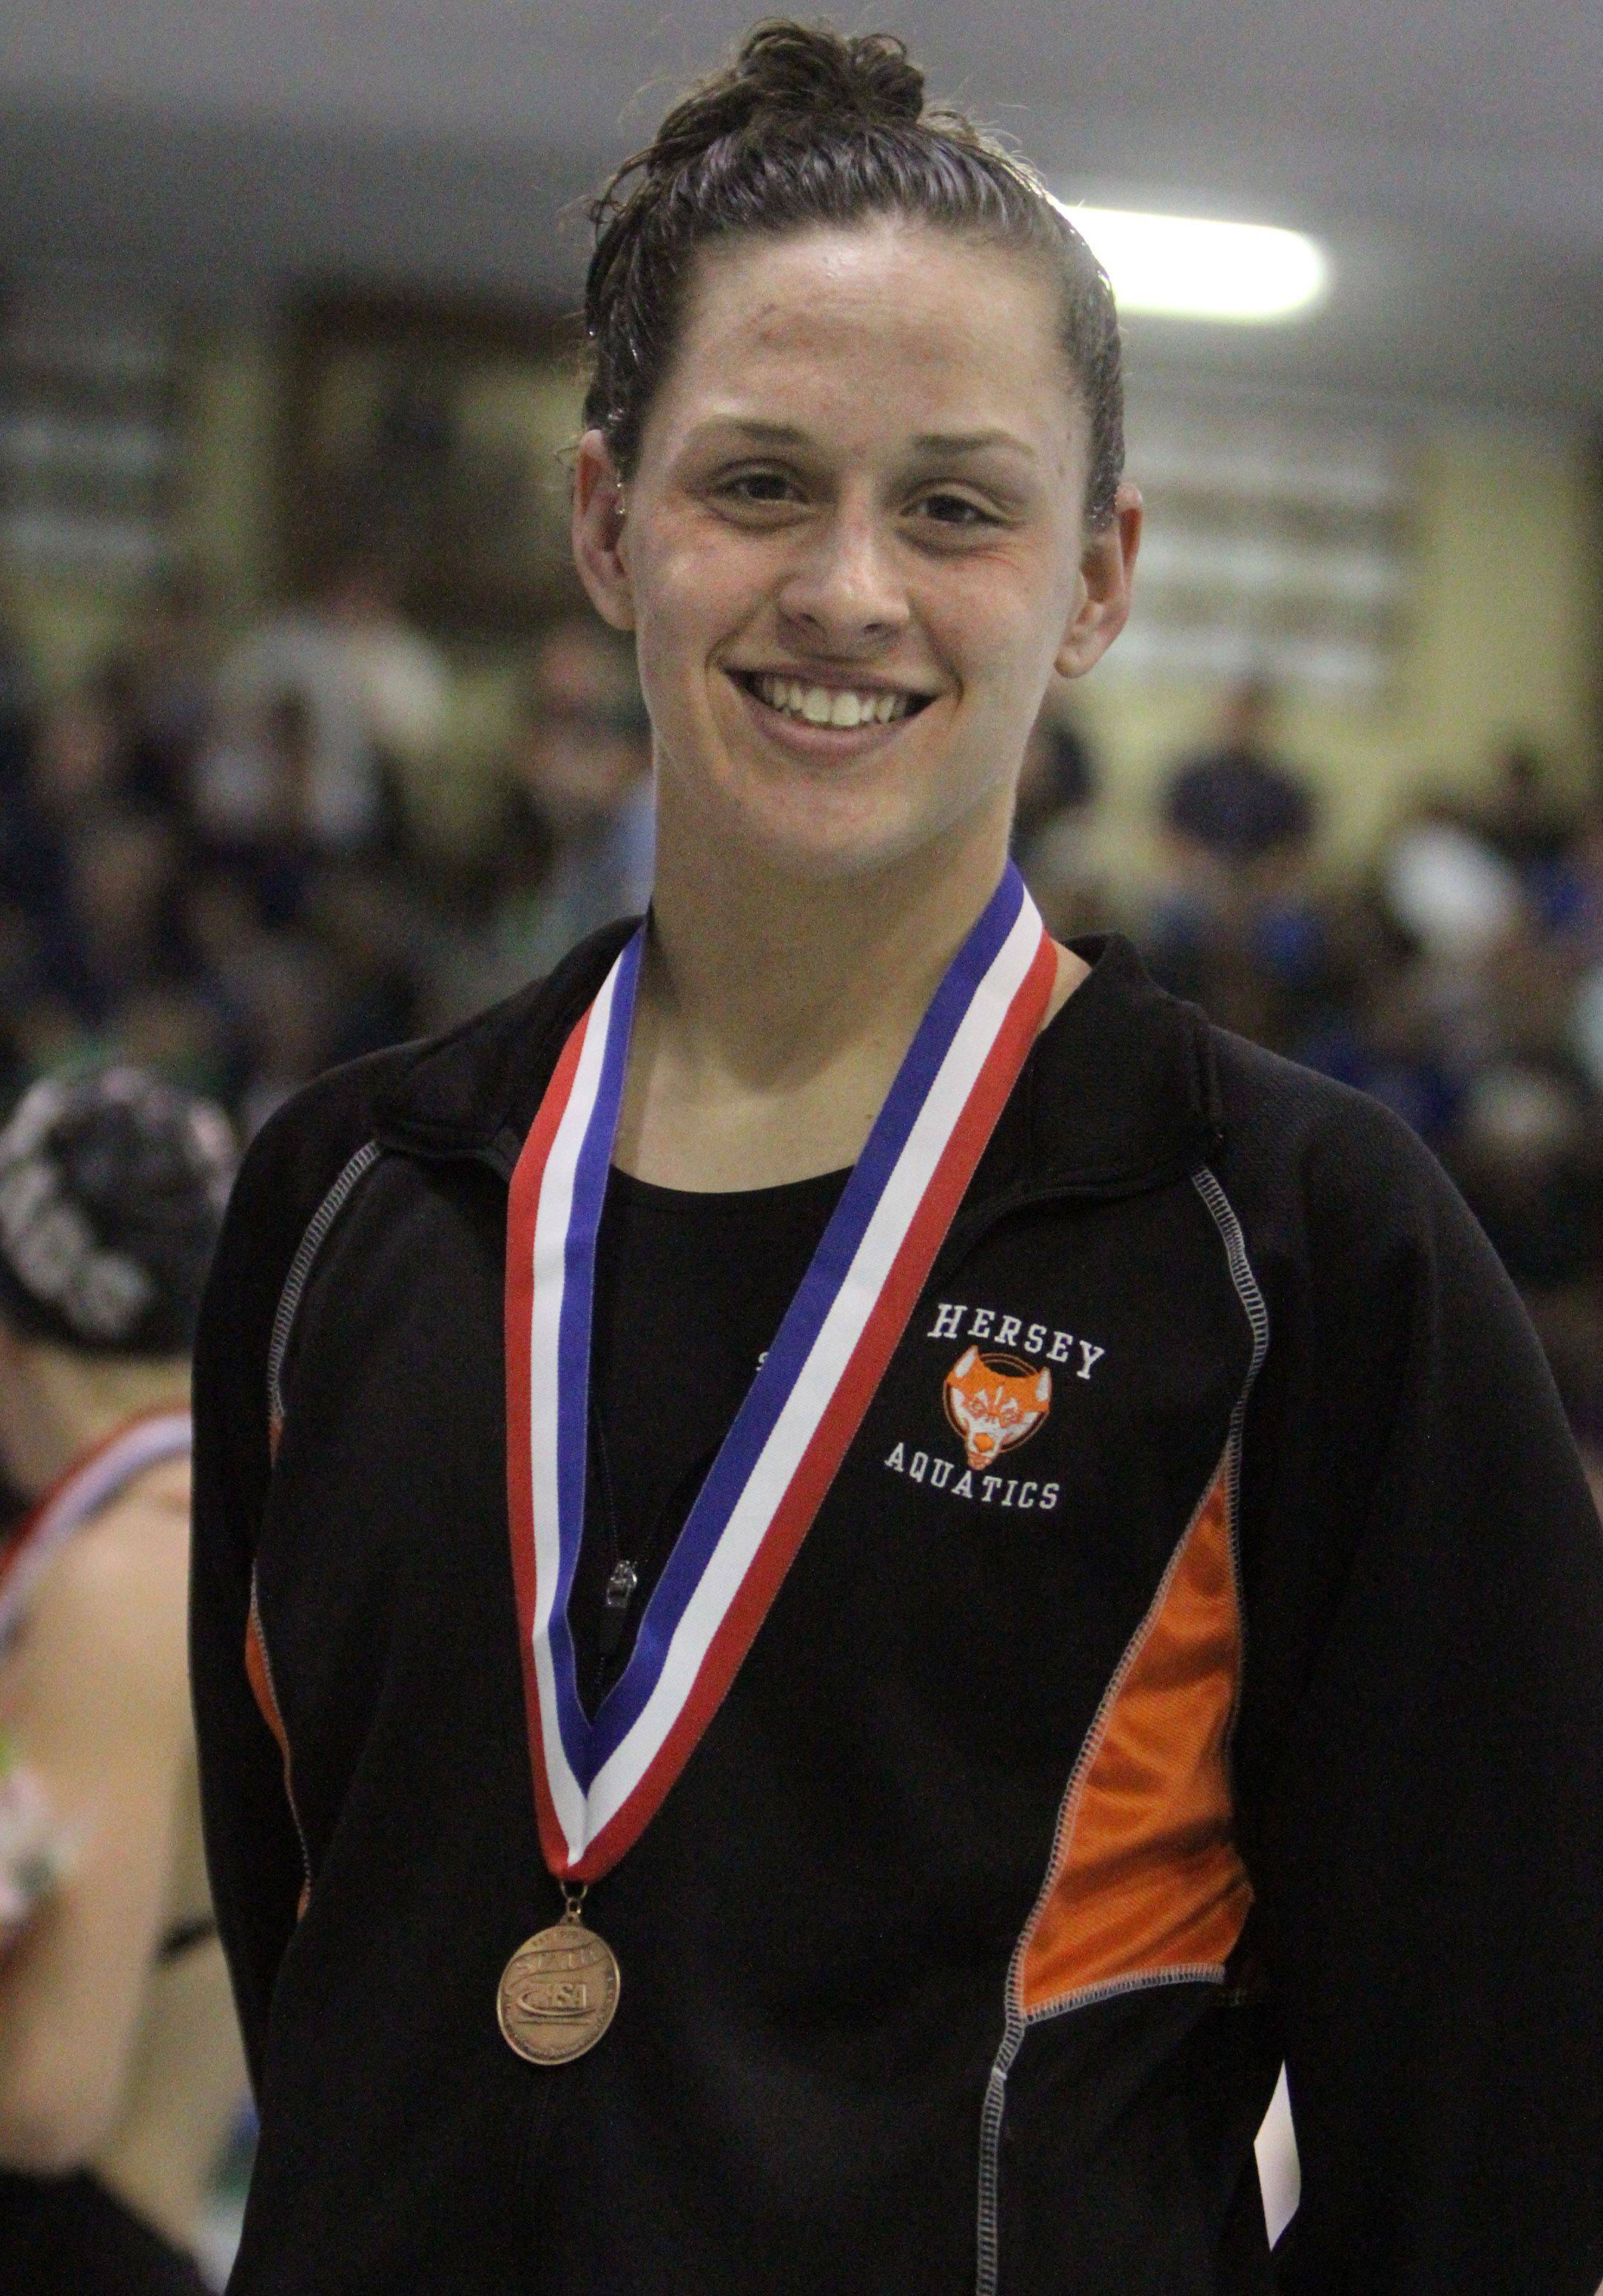 Hersey's Amada Petro placed ninth in the 200-yard freestyle at IHSA state championships in Winnetka on Saturday, November 19th.